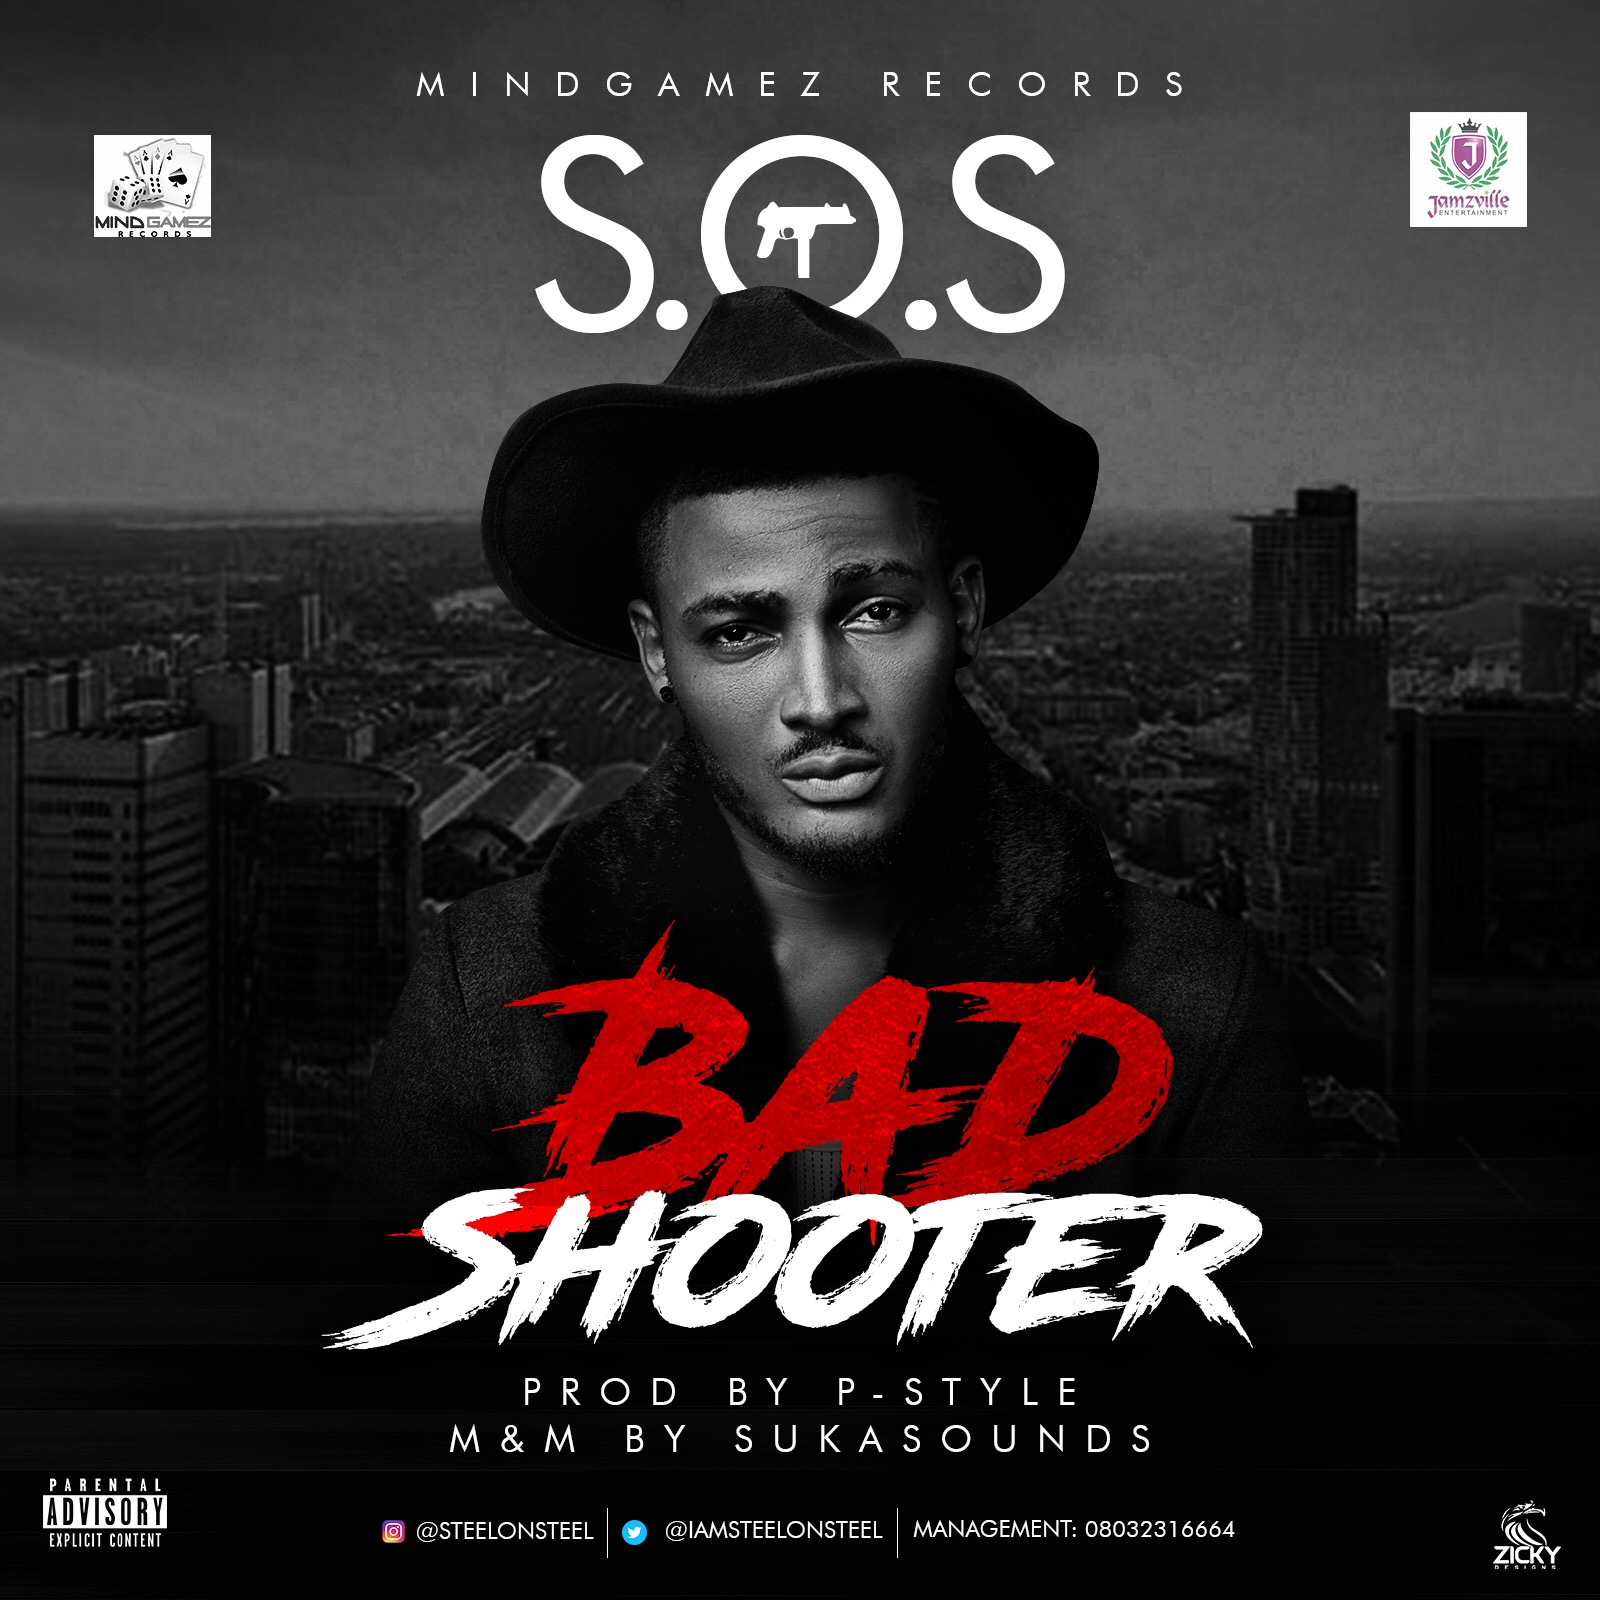 S.O.S – Bad Shooter (Dir. by Mex)